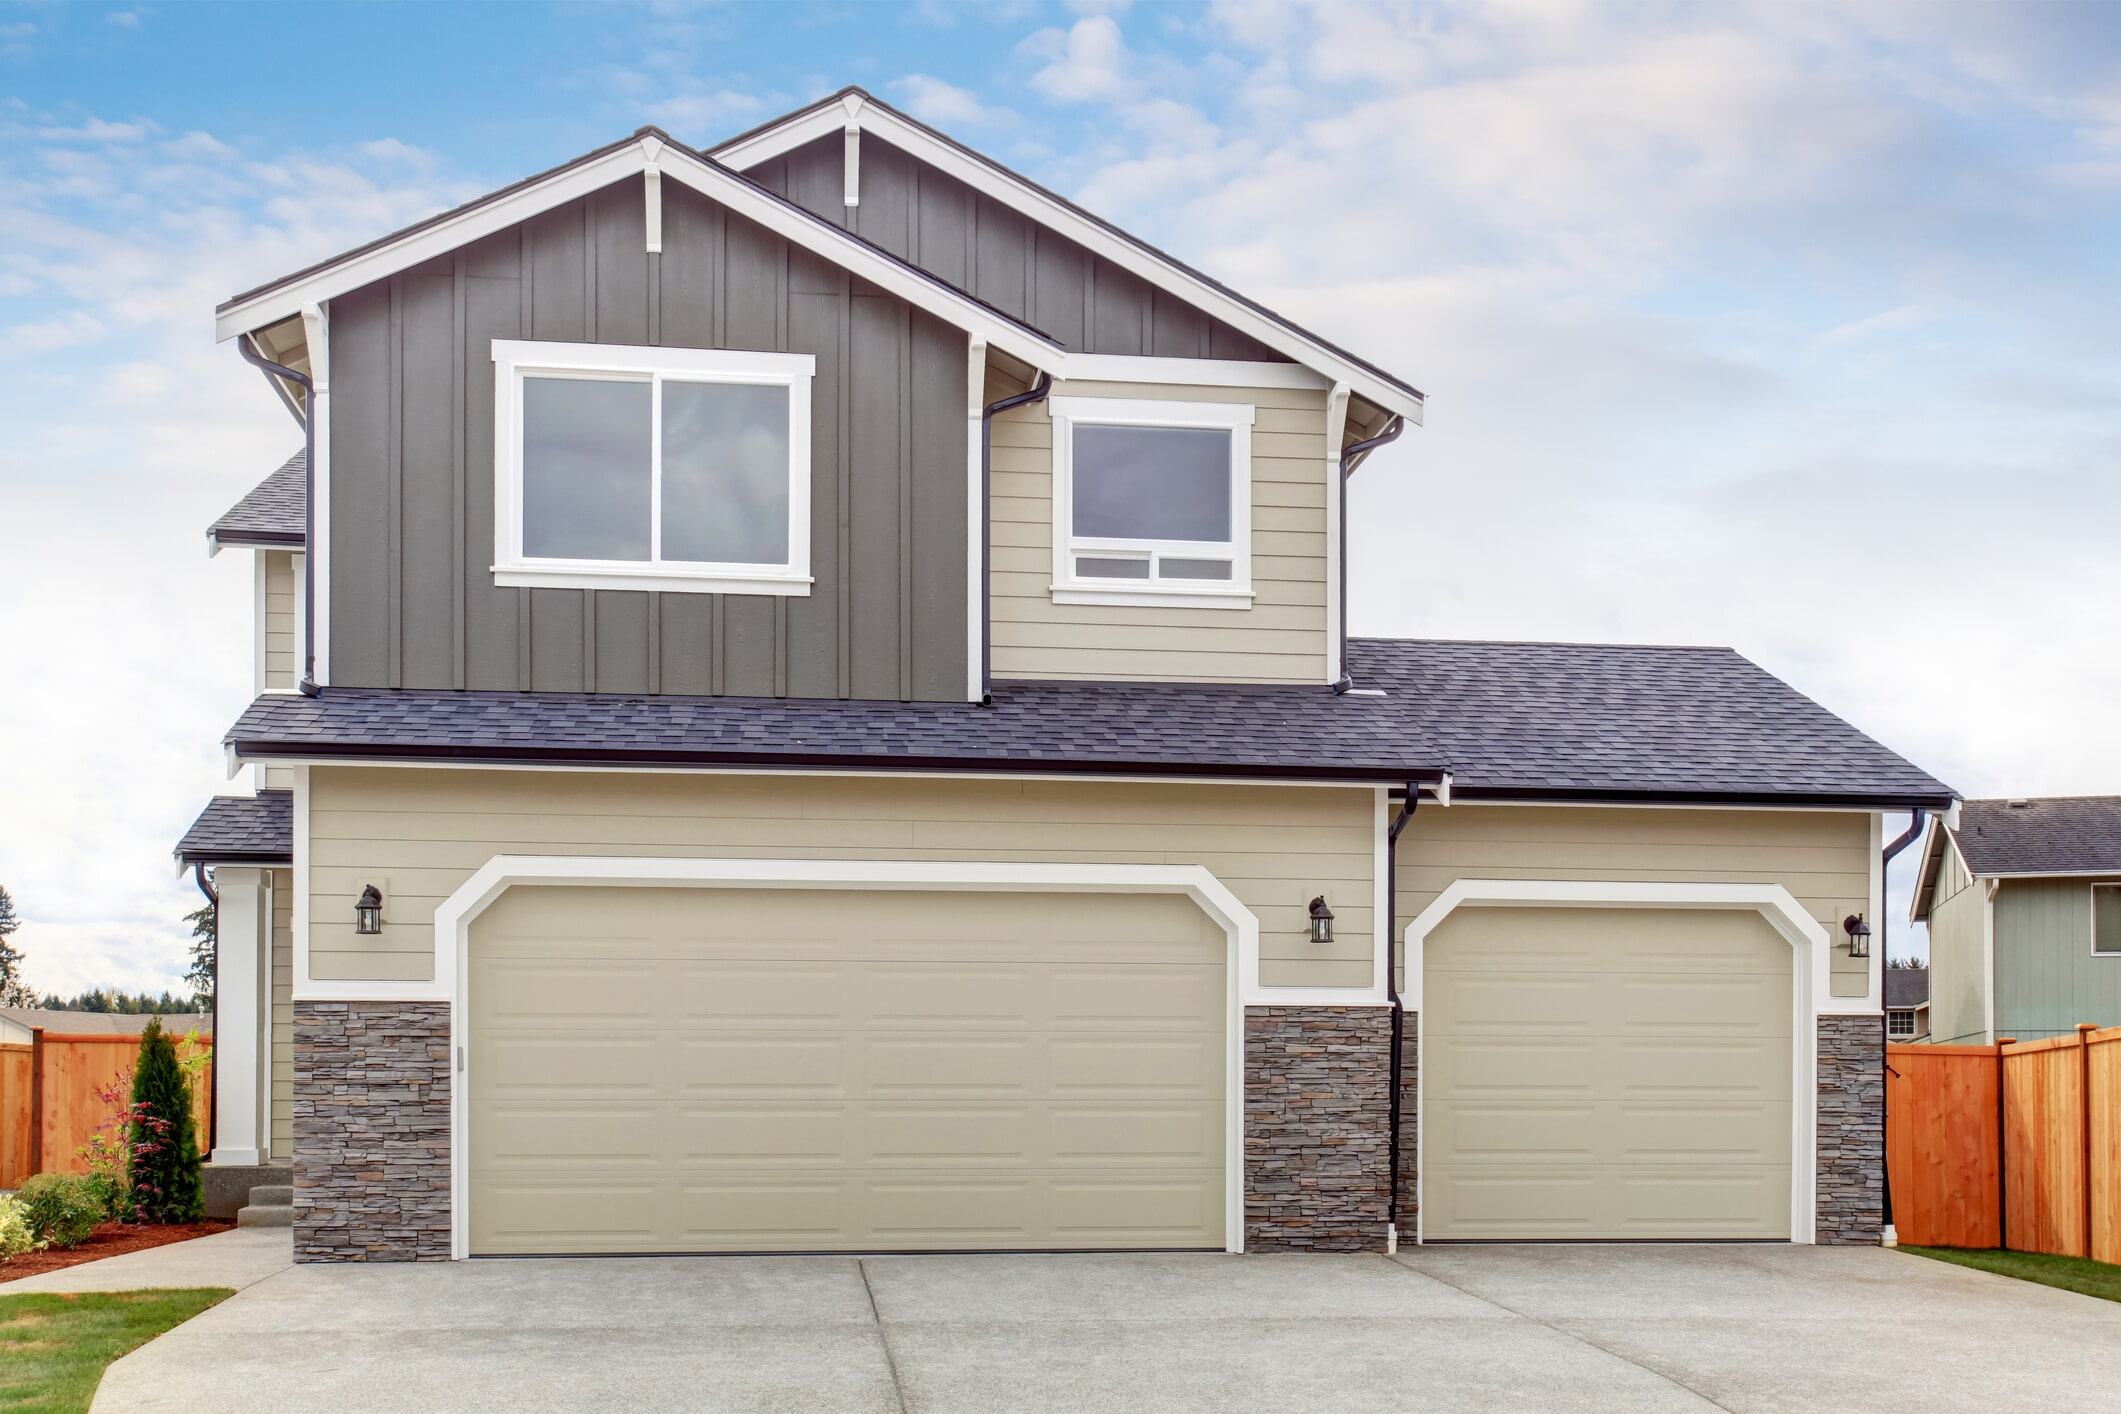 Garage Door Sales   Garage Door Services In Livonia, MI